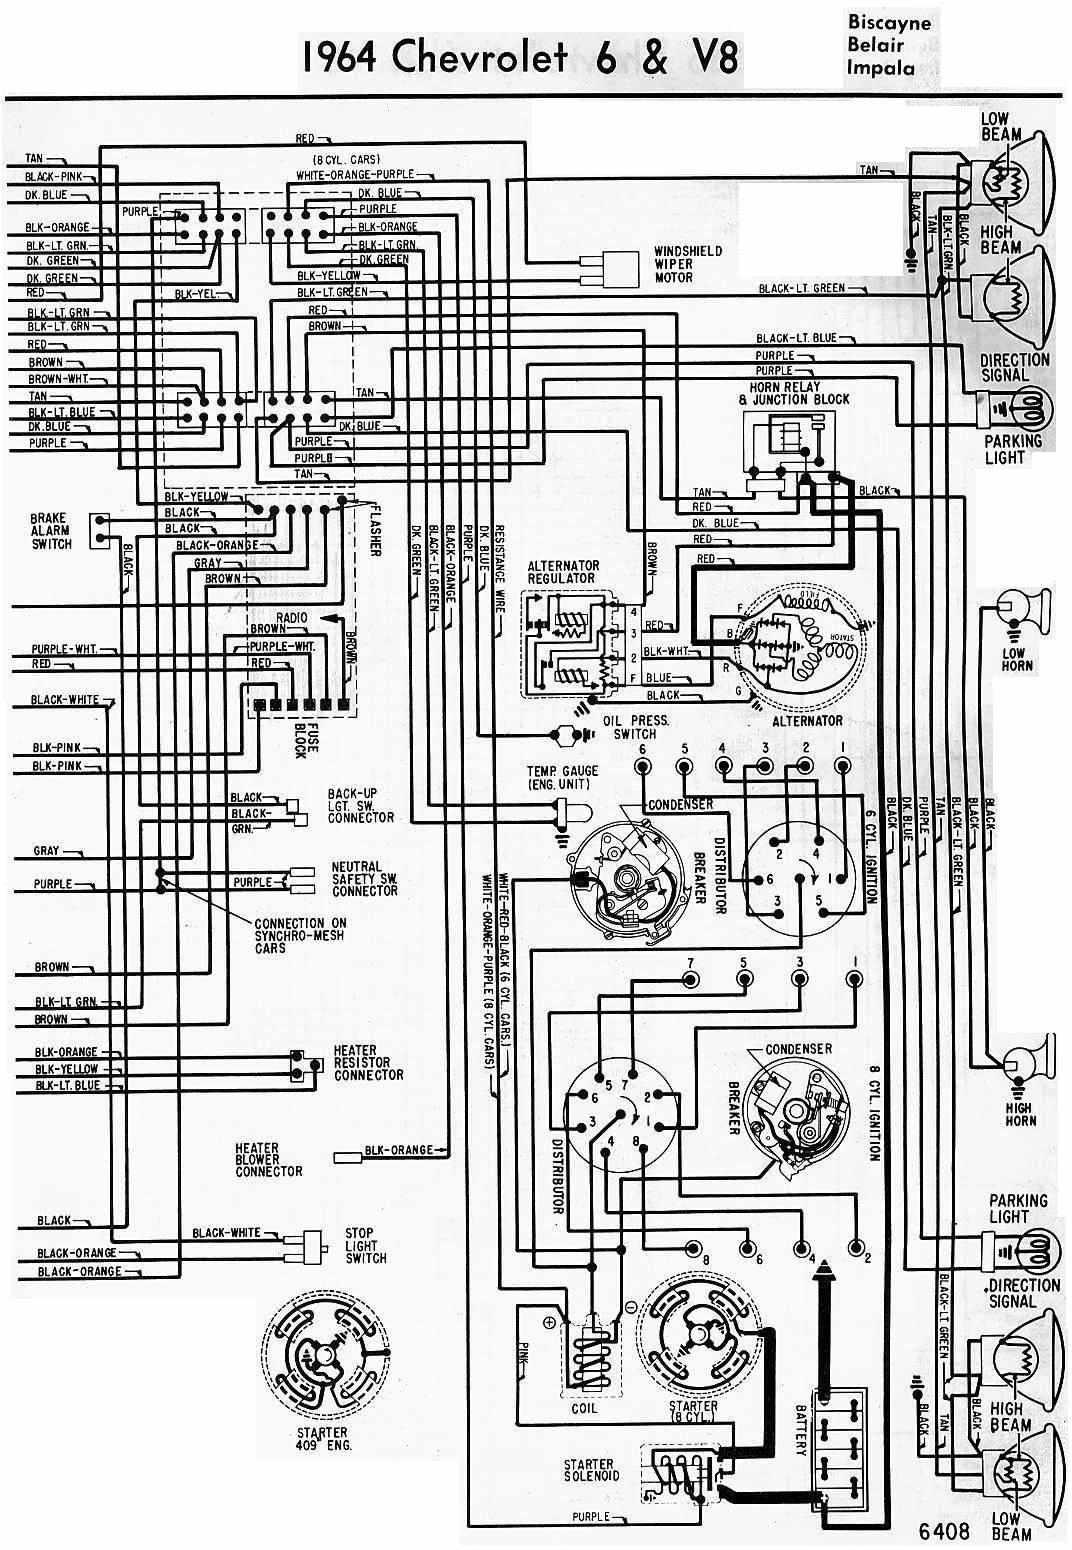 Electrical+Wiring+Diagram+Of+1964+Chevrolet+6+And+V8 1 bp blogspot com 33lum42pdr4 tpzumzbkjti aaaaaaa  at reclaimingppi.co